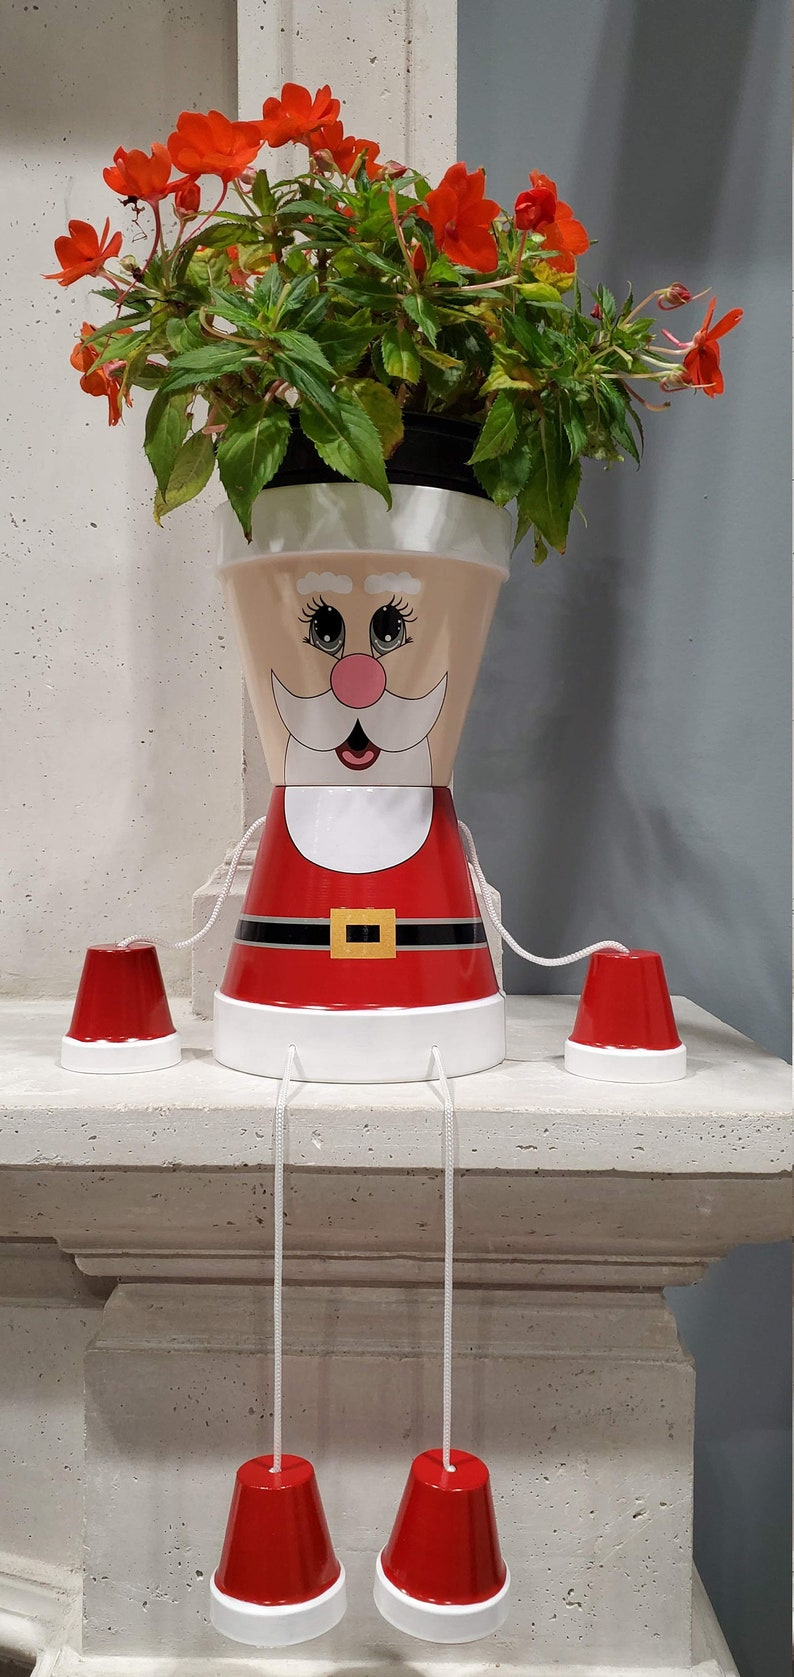 Christmas Santa flower pot people home decoration high quality image 0